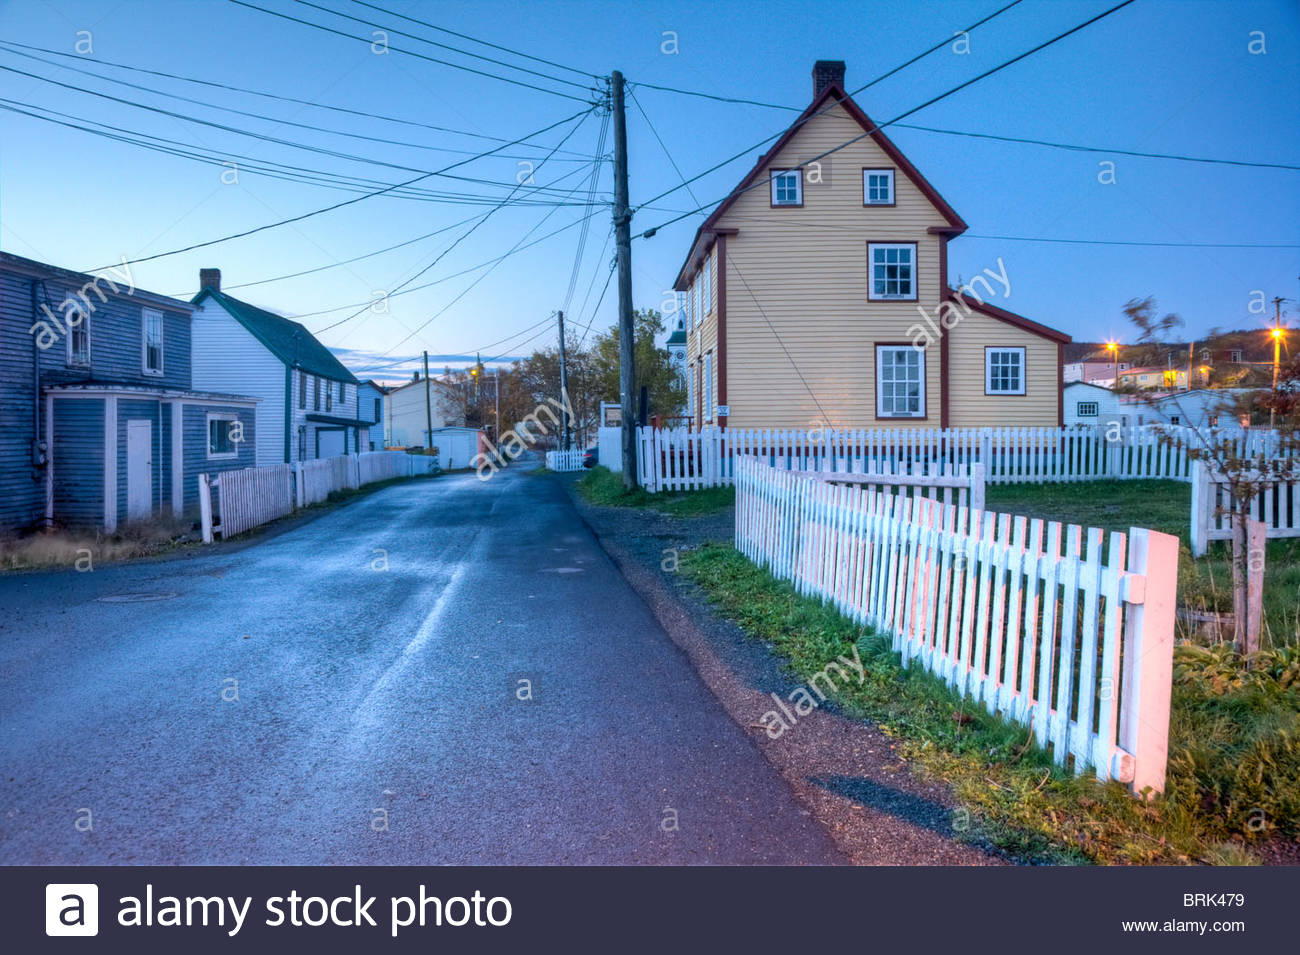 Architecture in one of the oldest communities in North America. - Stock Image